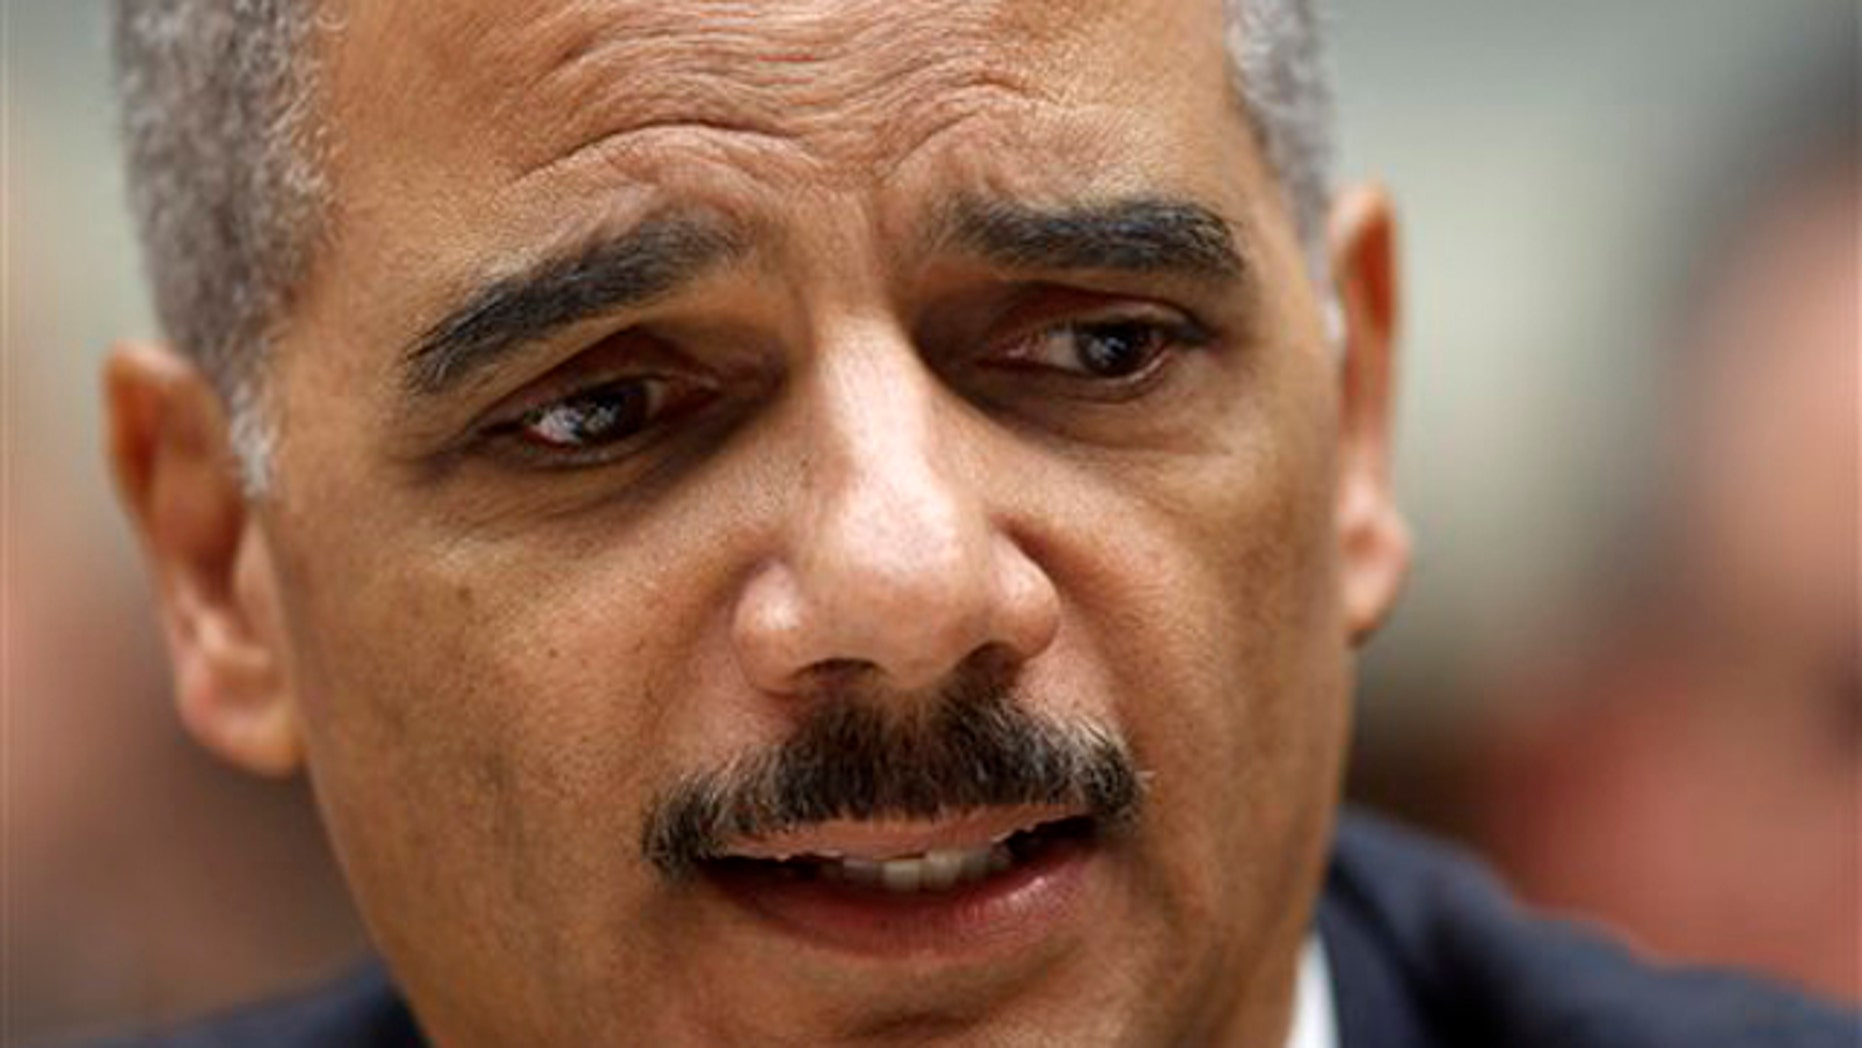 The judge took the unusual step of writing Attorney General Eric Holder directly.